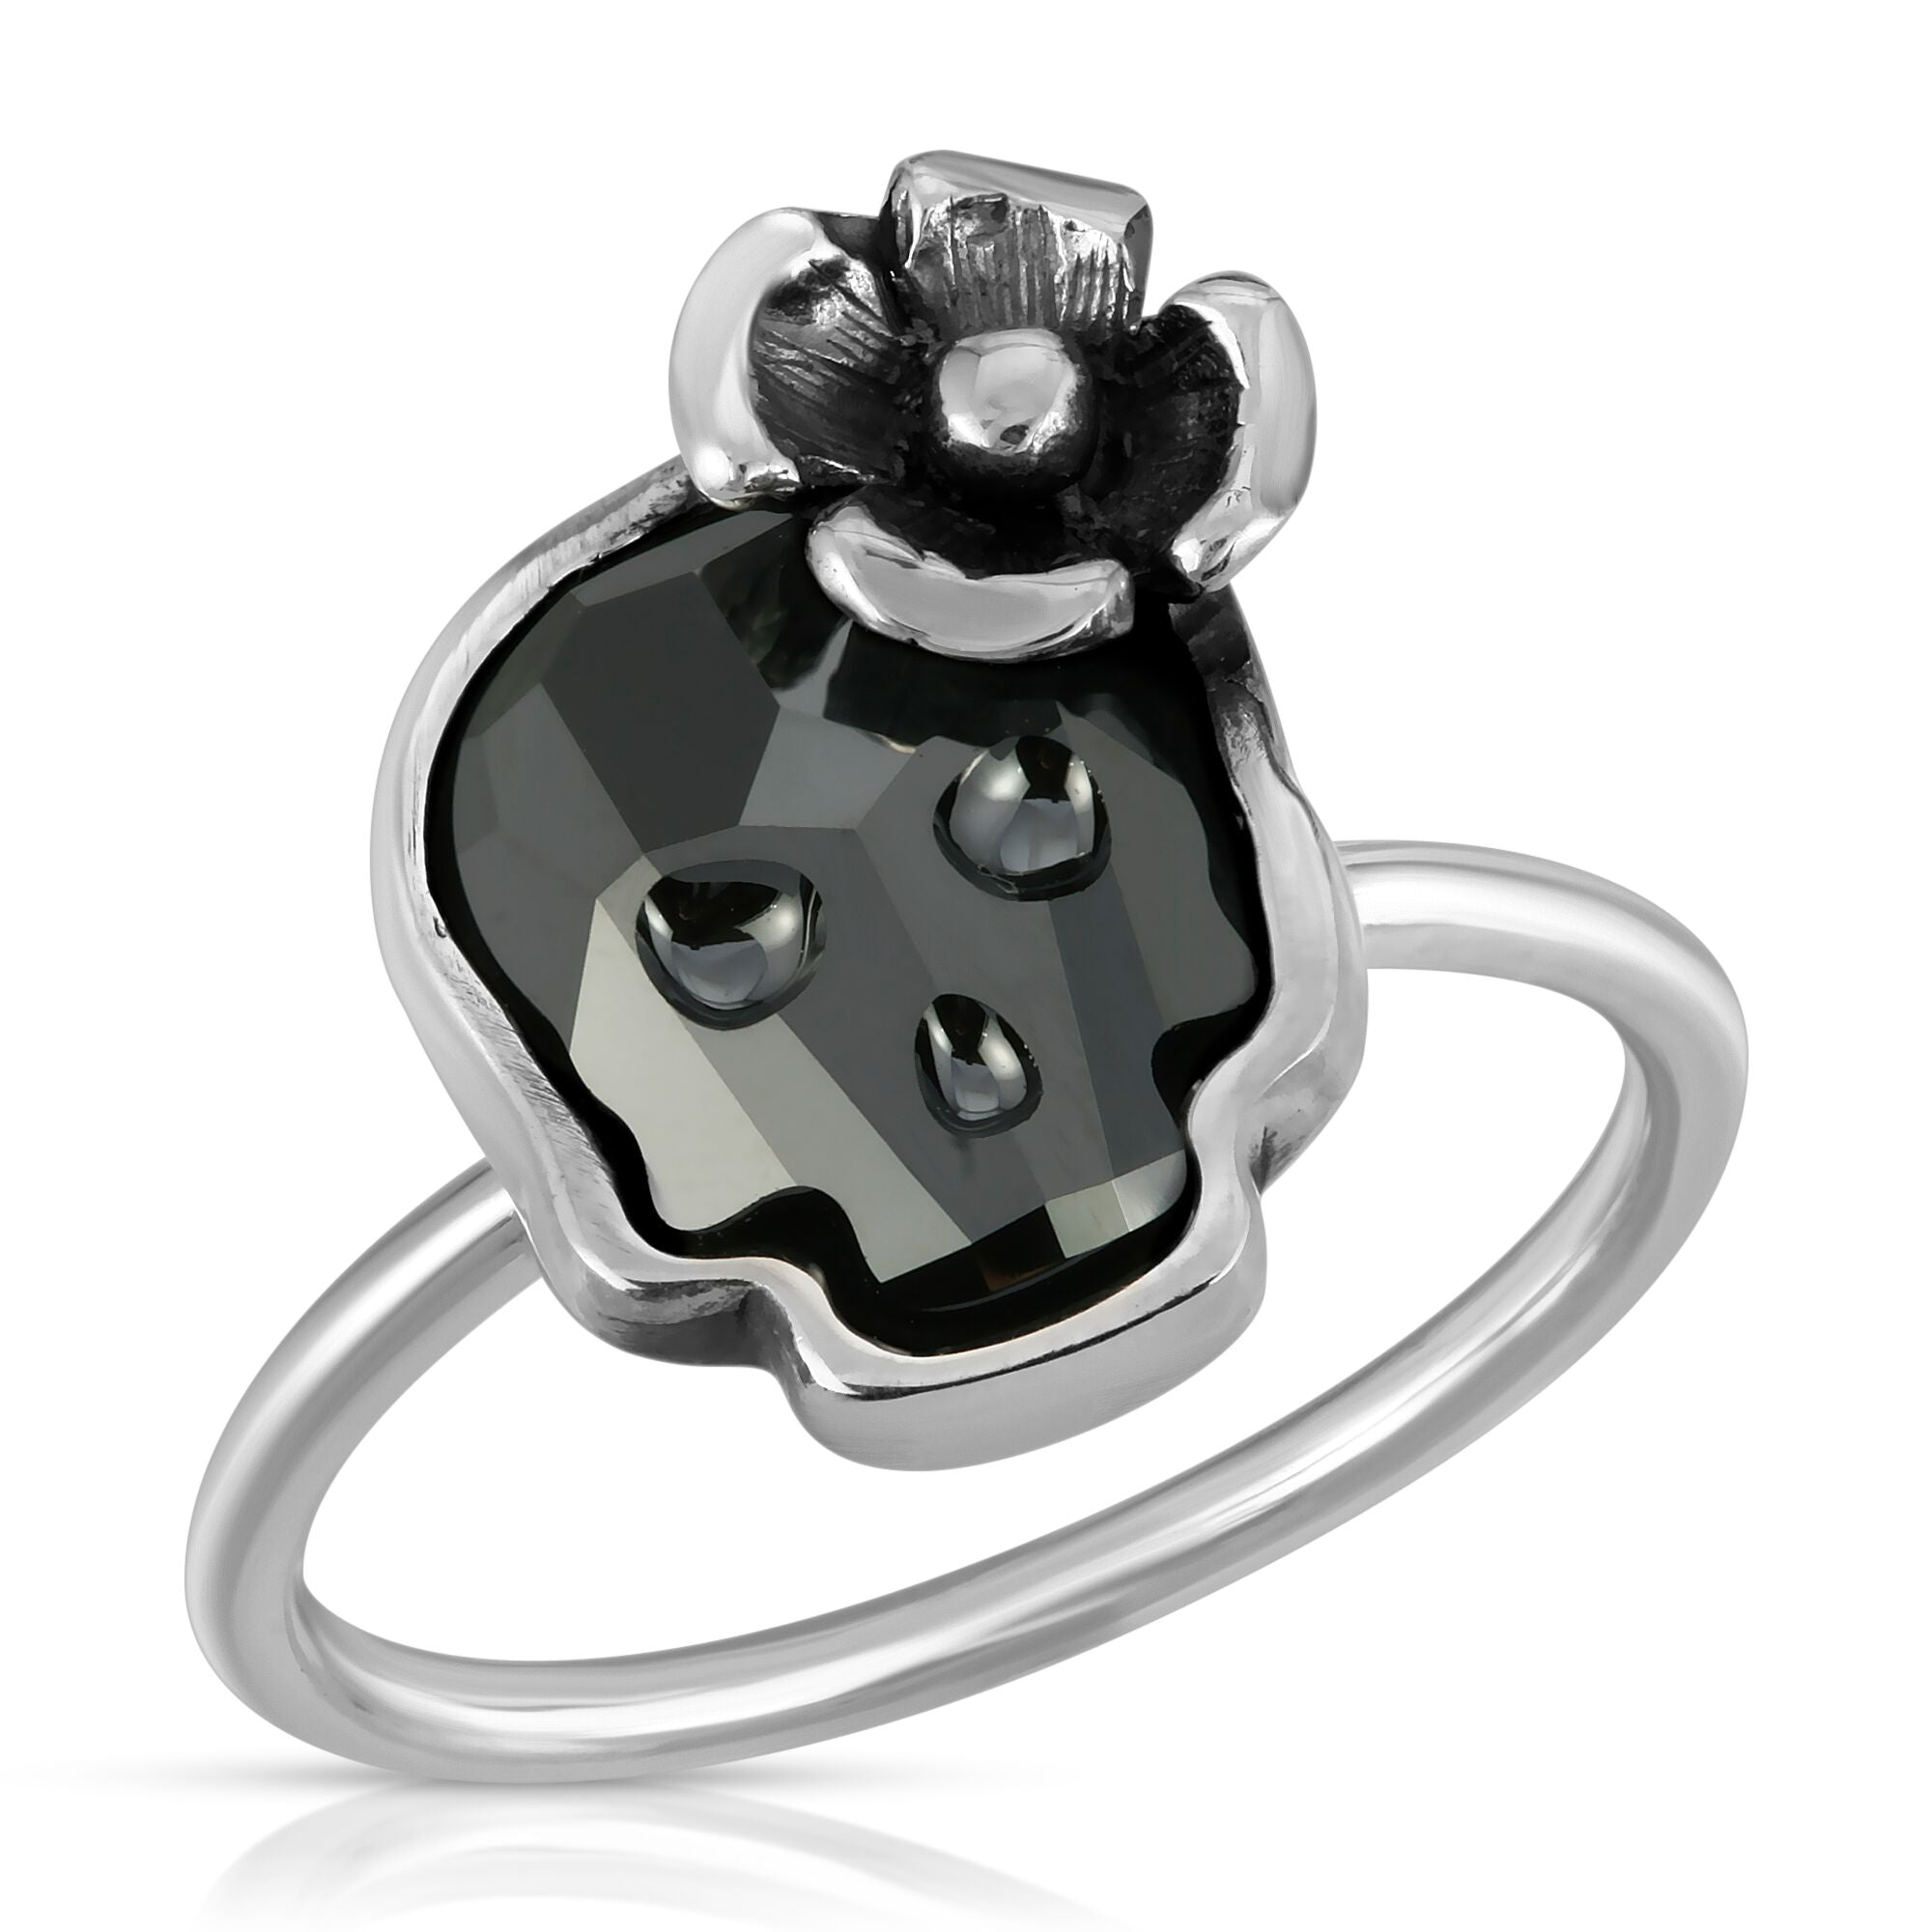 The W brothers Swarovski Skull Ring in chrome black with a gorgeous silver flower crafted from premium Grade A Sterling Silver. Perfect jewelry accessory ring for fashionable statement women. Available at www.thewbros.com